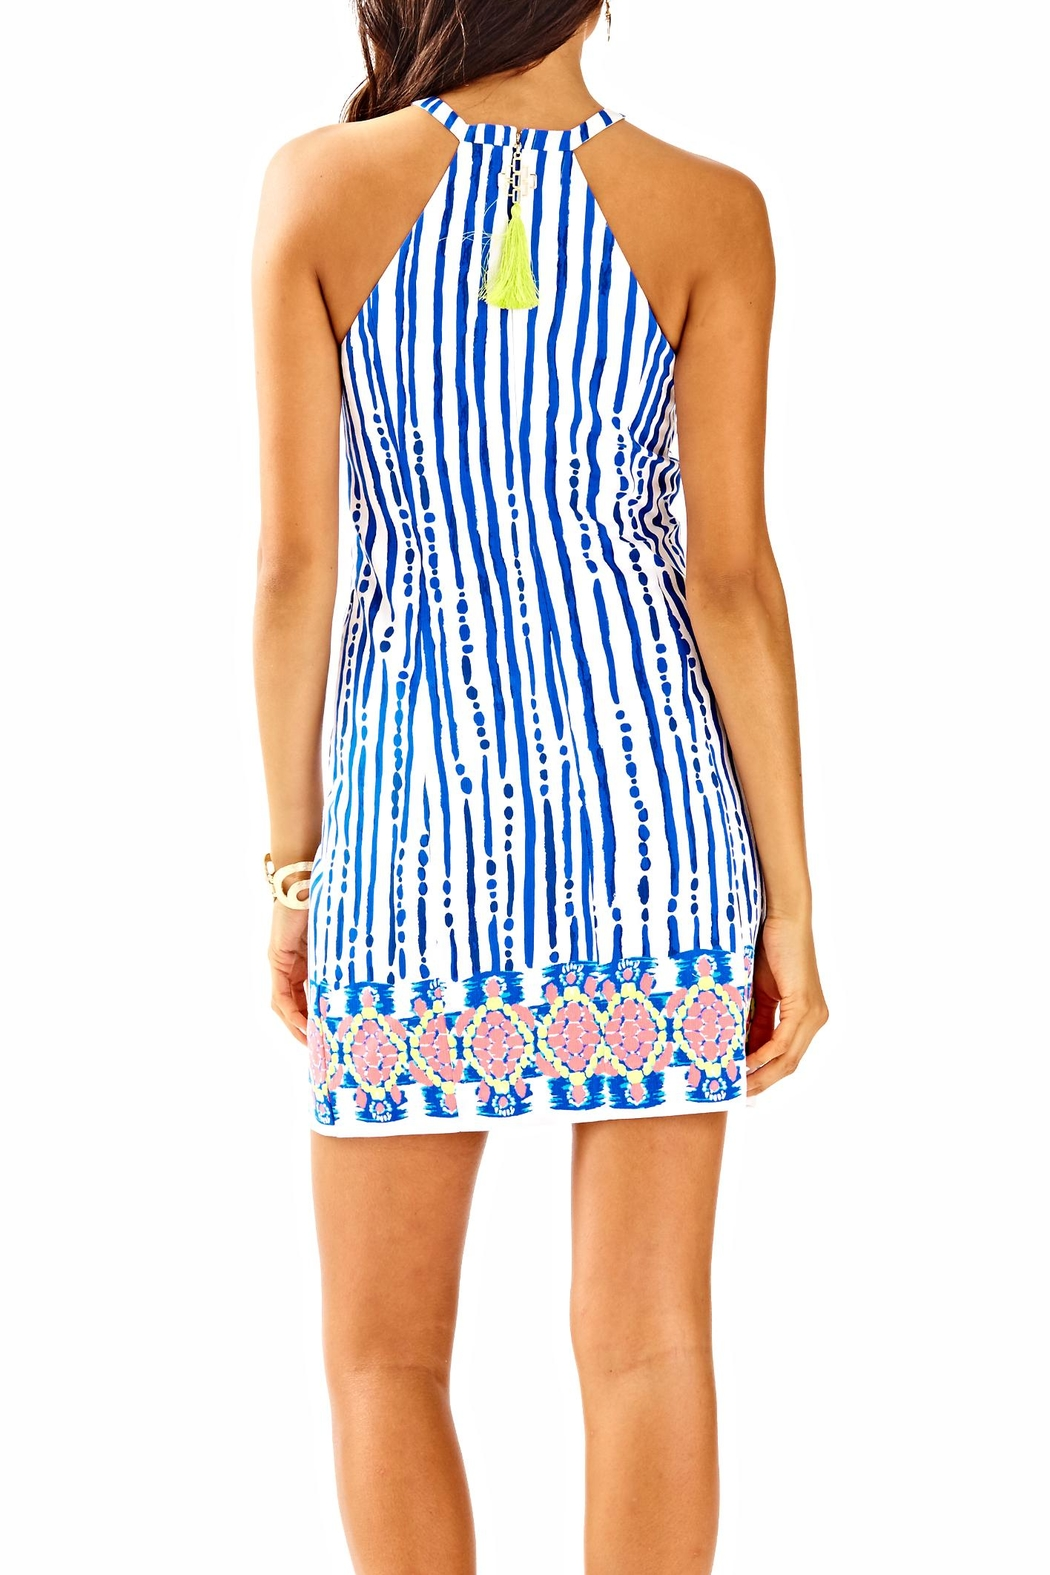 Lilly Pulitzer Iveigh Shift Dress - Front Full Image